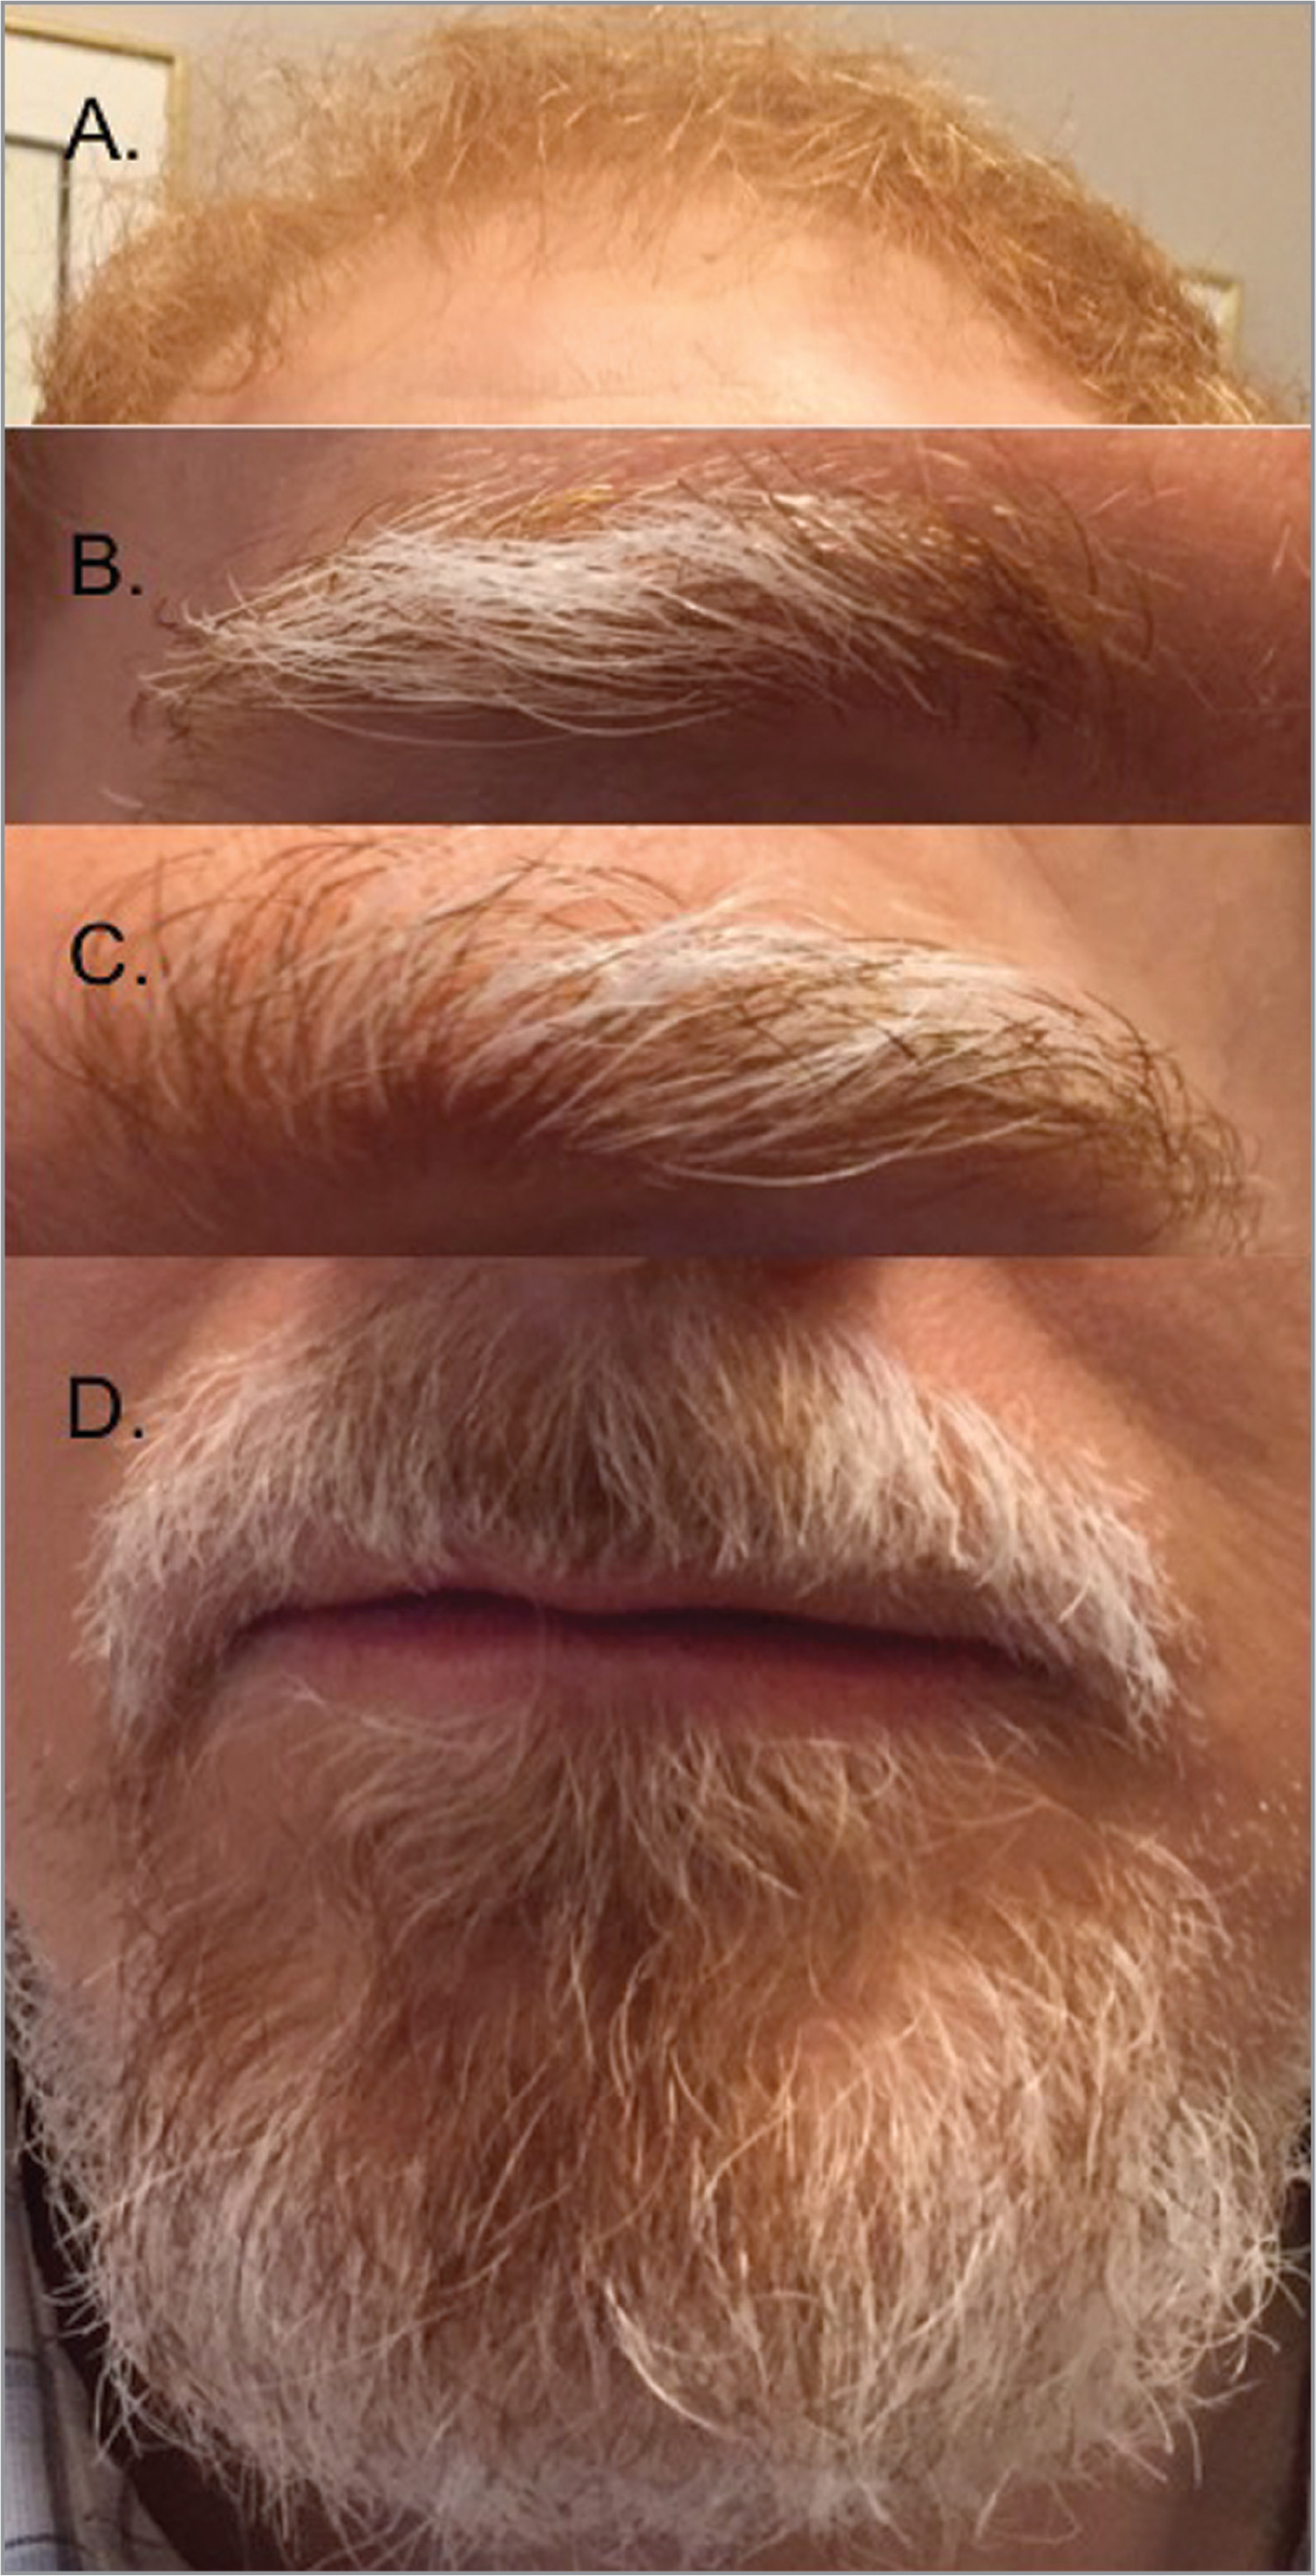 Patient with poliosis from ipilimumab-induced Vogt-Koyanagi-Harada. (A) Forehead demonstrating his natural red hair that was unaffected during medication use. Poliosis was found on his right (B) and left (C) eyebrows and his goatee (D).